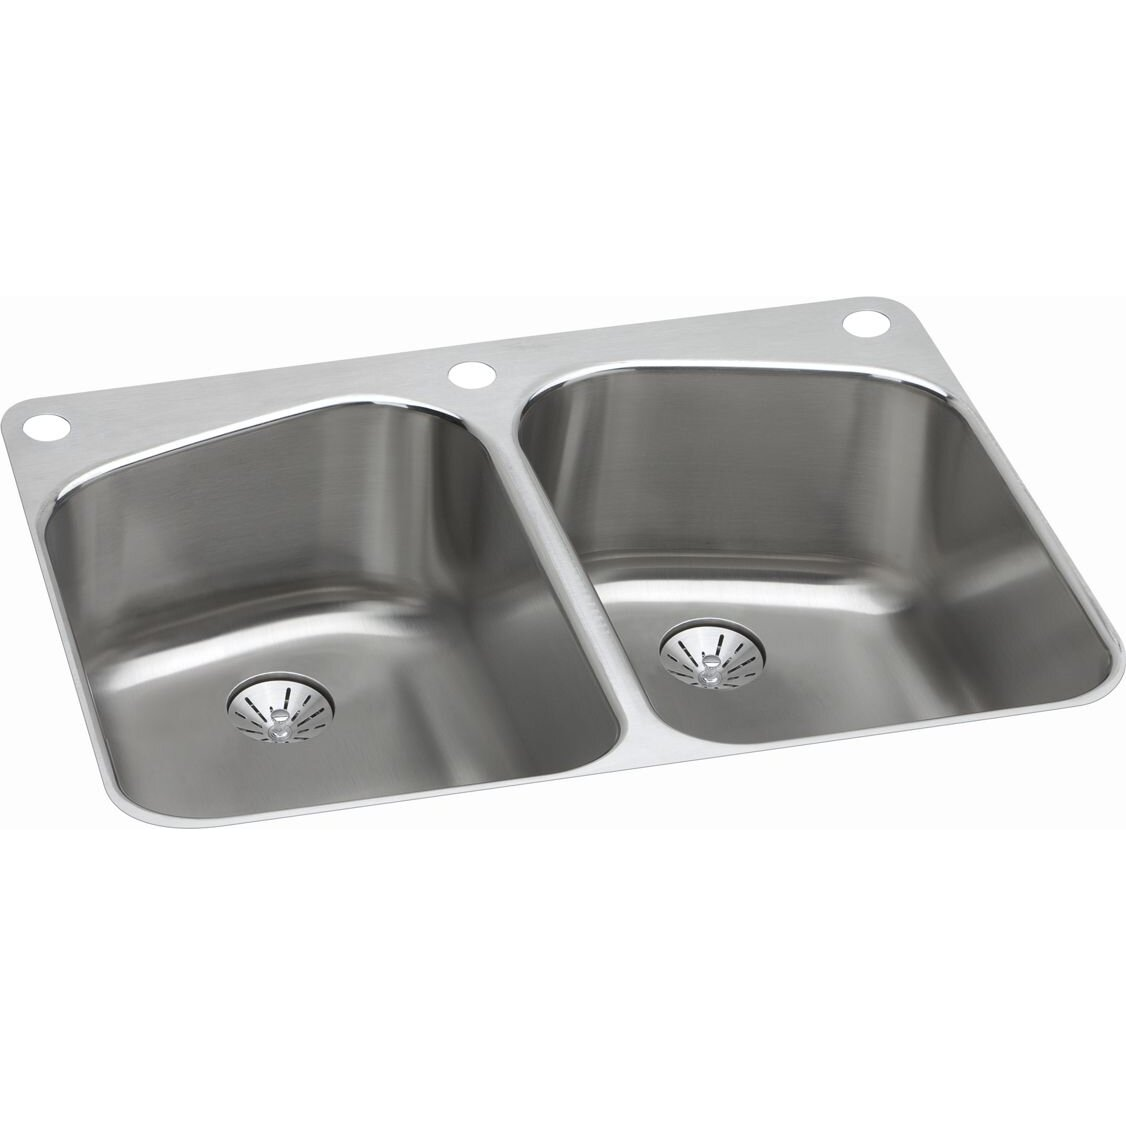 Elkay Double Kitchen Sinks For Sale